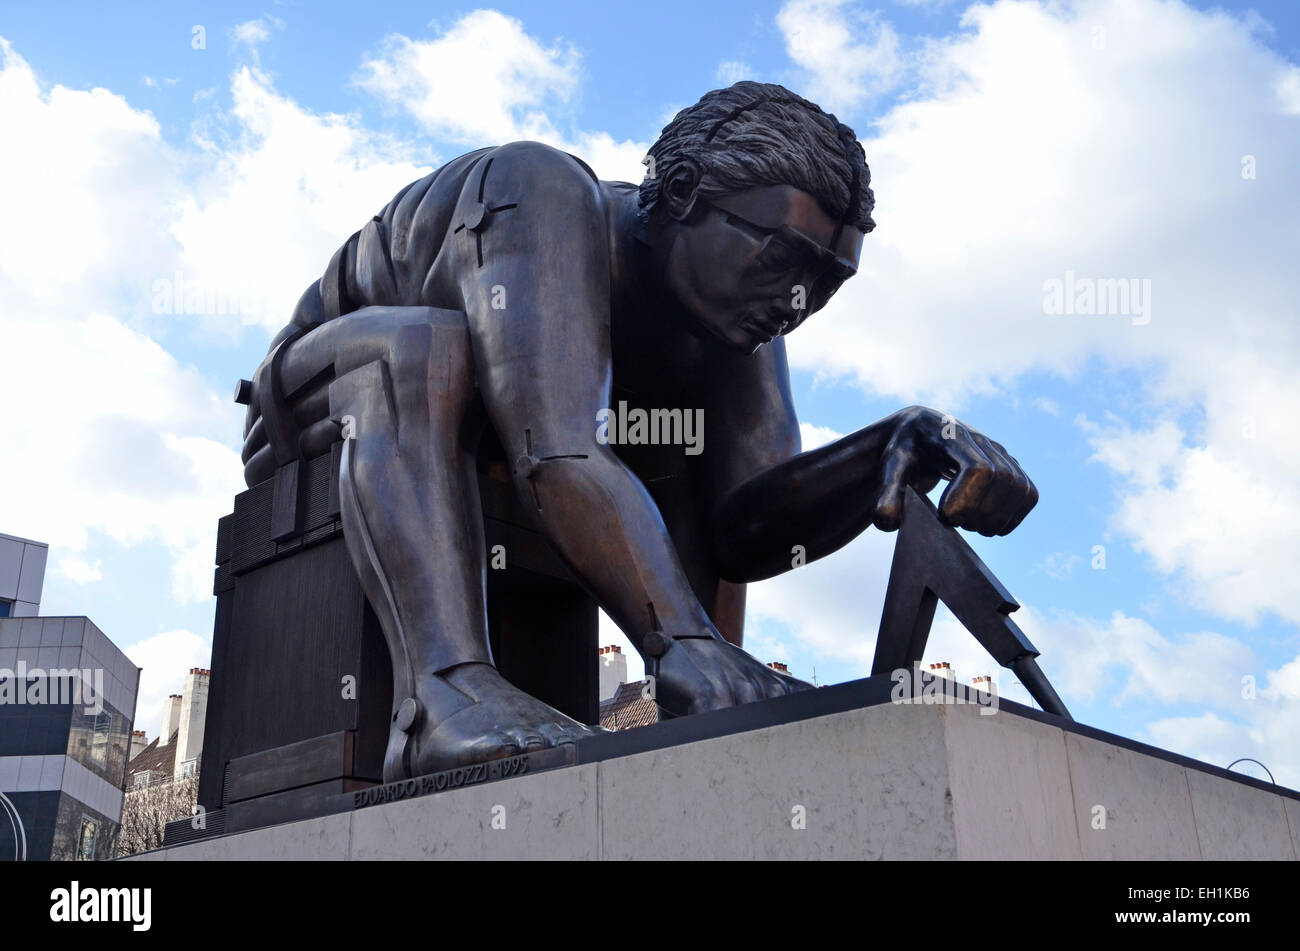 A statue of Sir Isaac Newton in the grounds of the British Library in Kings Cross, London - Stock Image